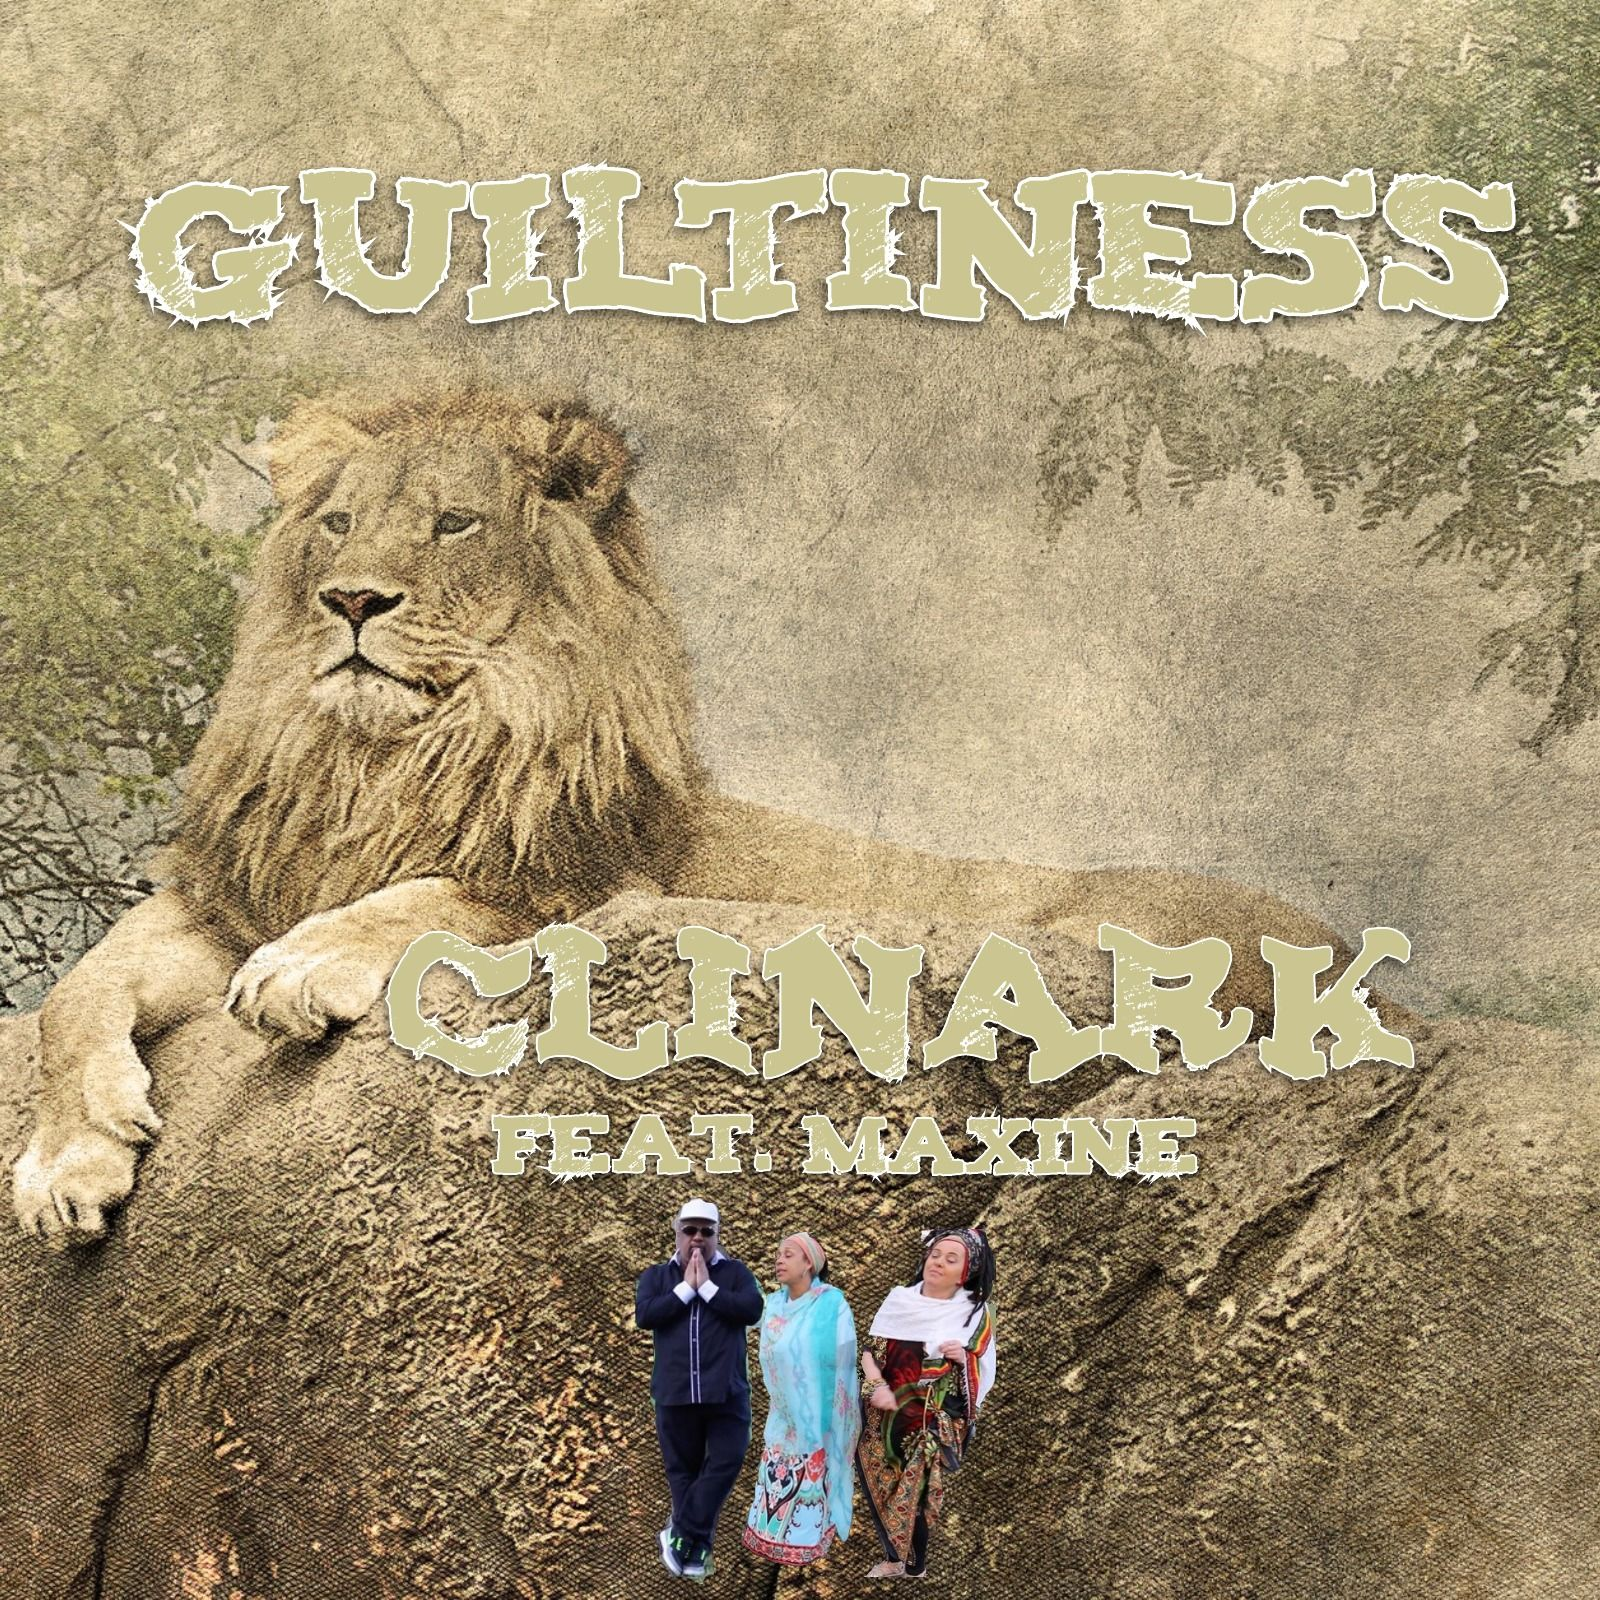 Guiltiness - A Tribute to Bob Marley